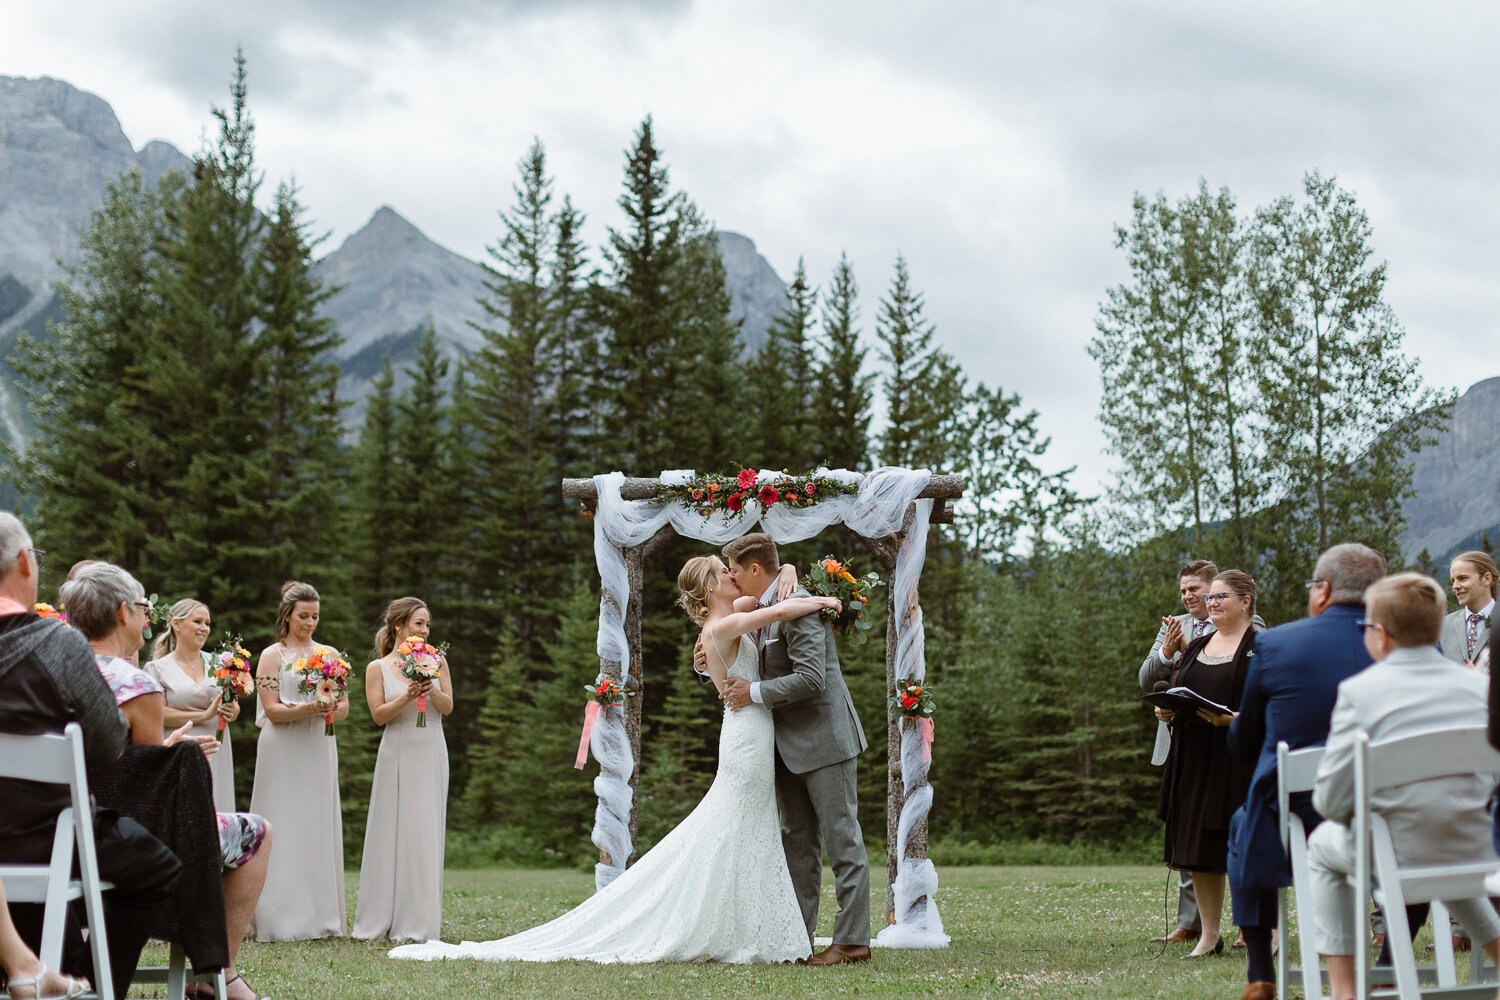 72-Canmore-Alberta-Real-Wedding-Best-Wedding-Photographers-101.JPG